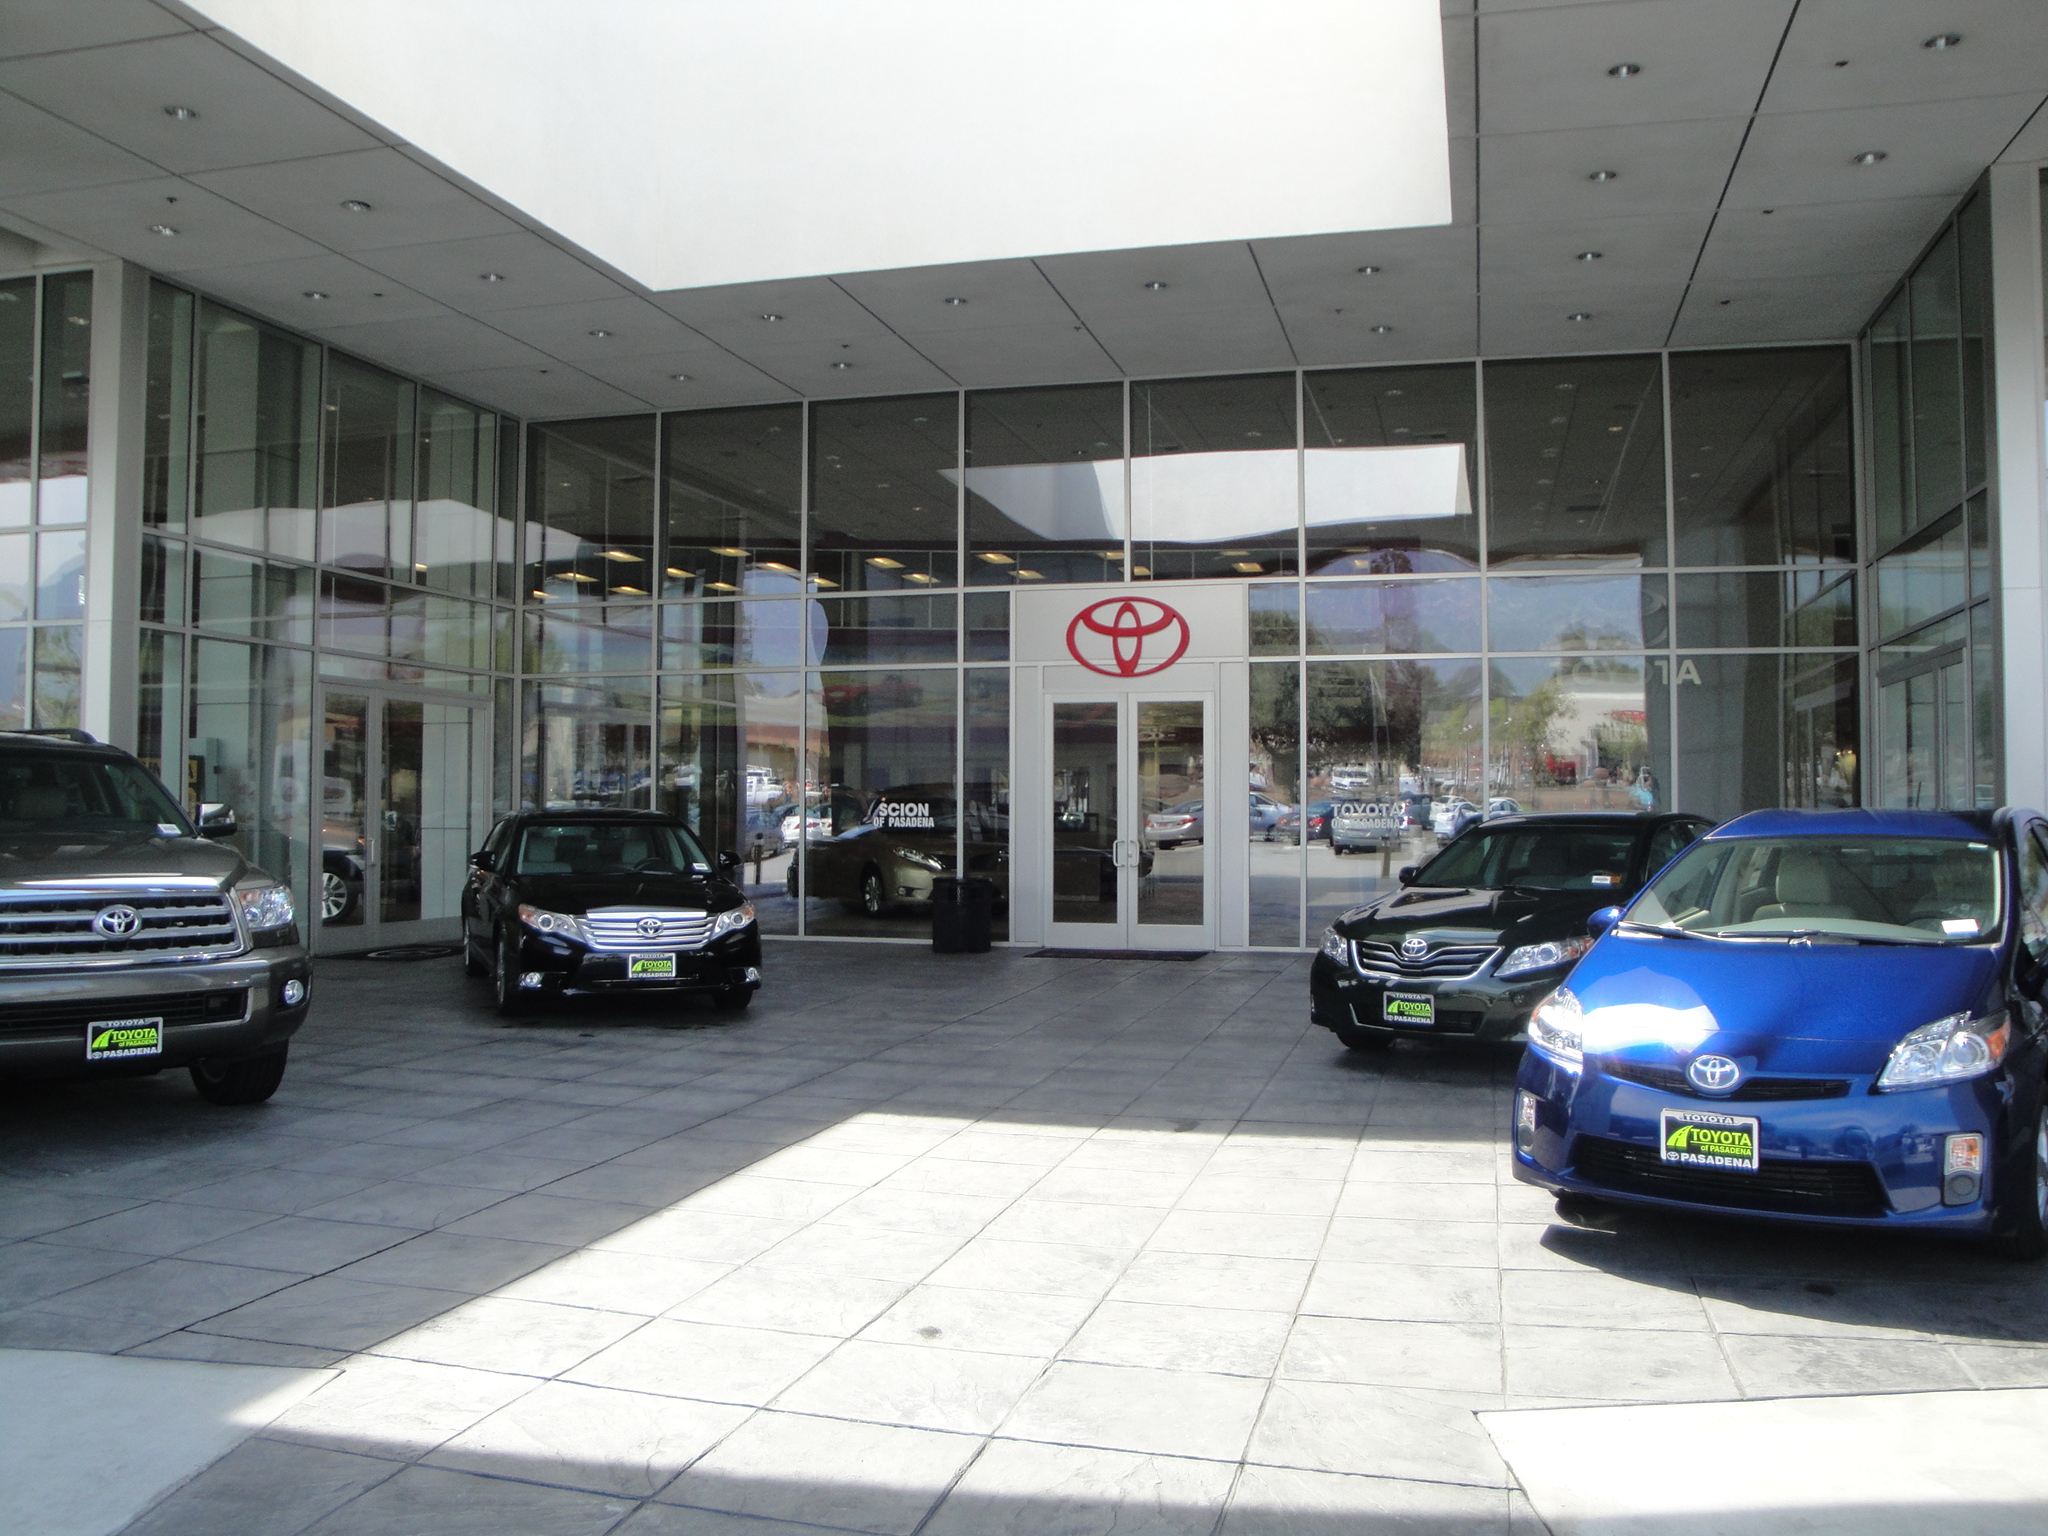 Head over to E Foothill Blvd, Pasadena, CA for your auto service needs. From tires to batteries to oil changes & more – trust your Pasadena Sears Auto Center.